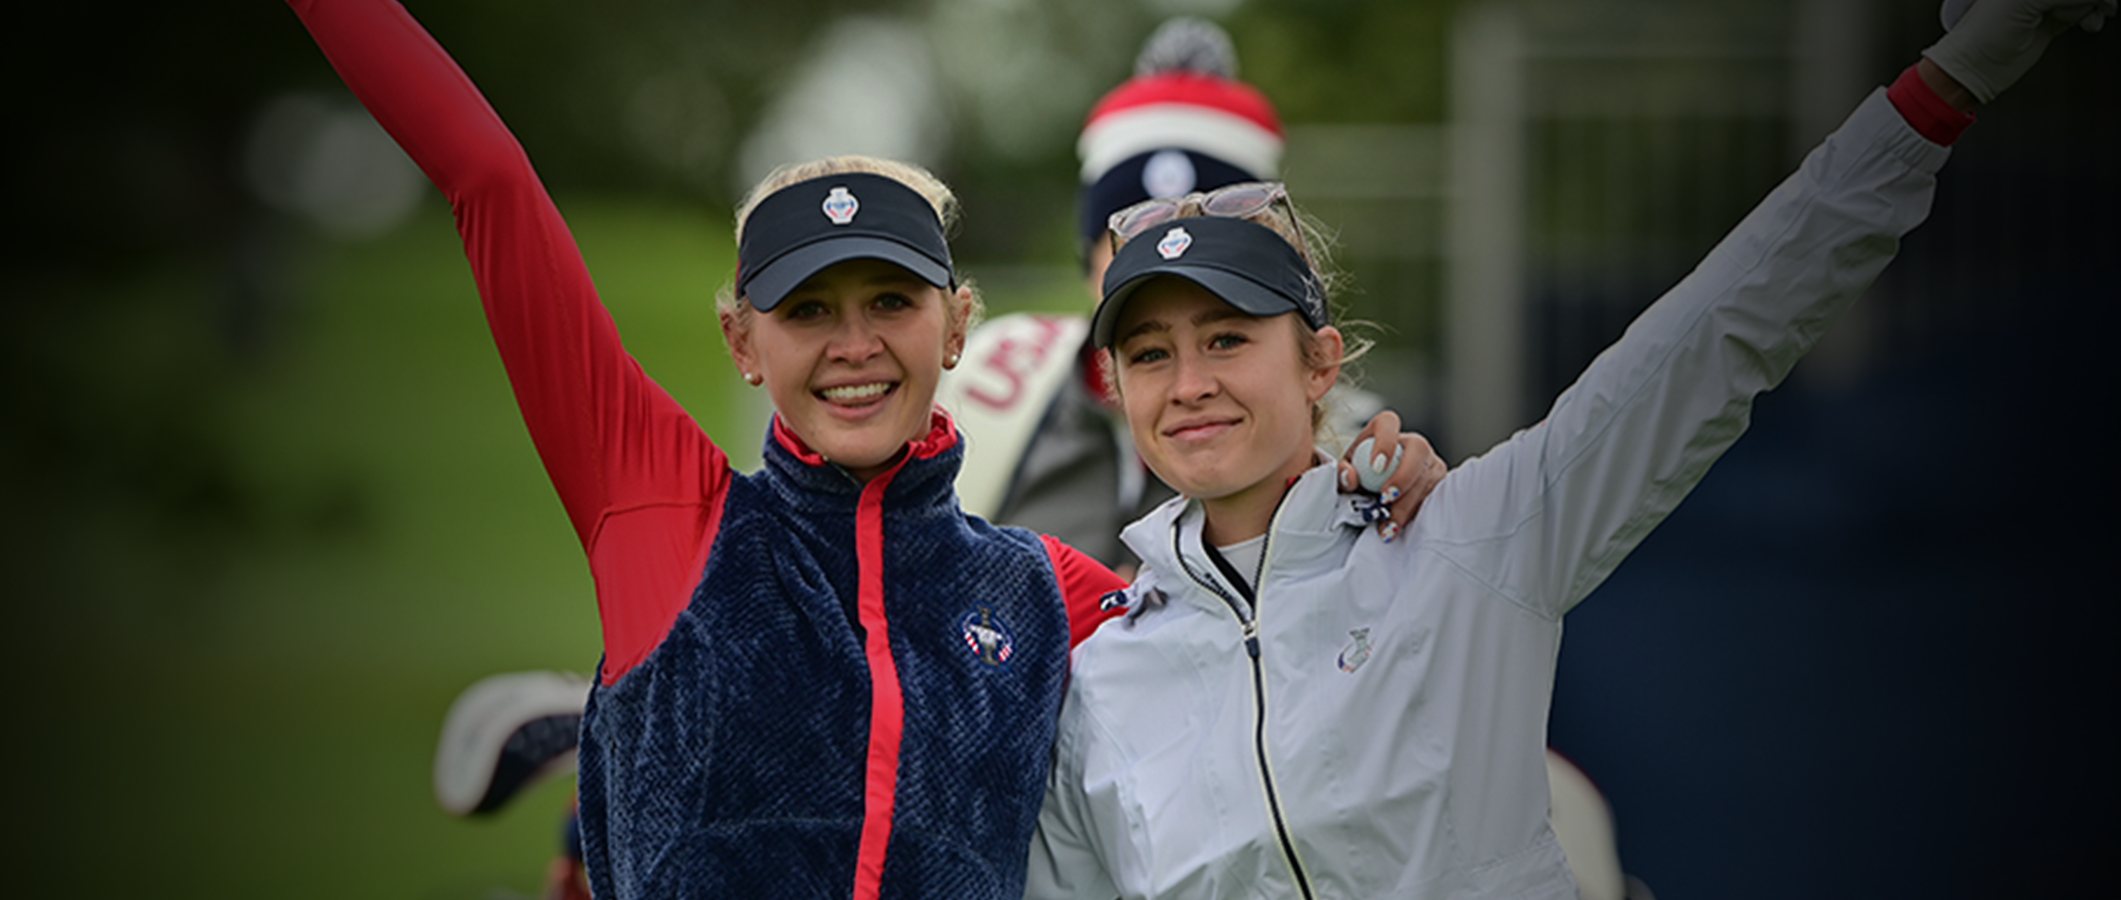 Evian Championship: A Major Purchased By Designer Water